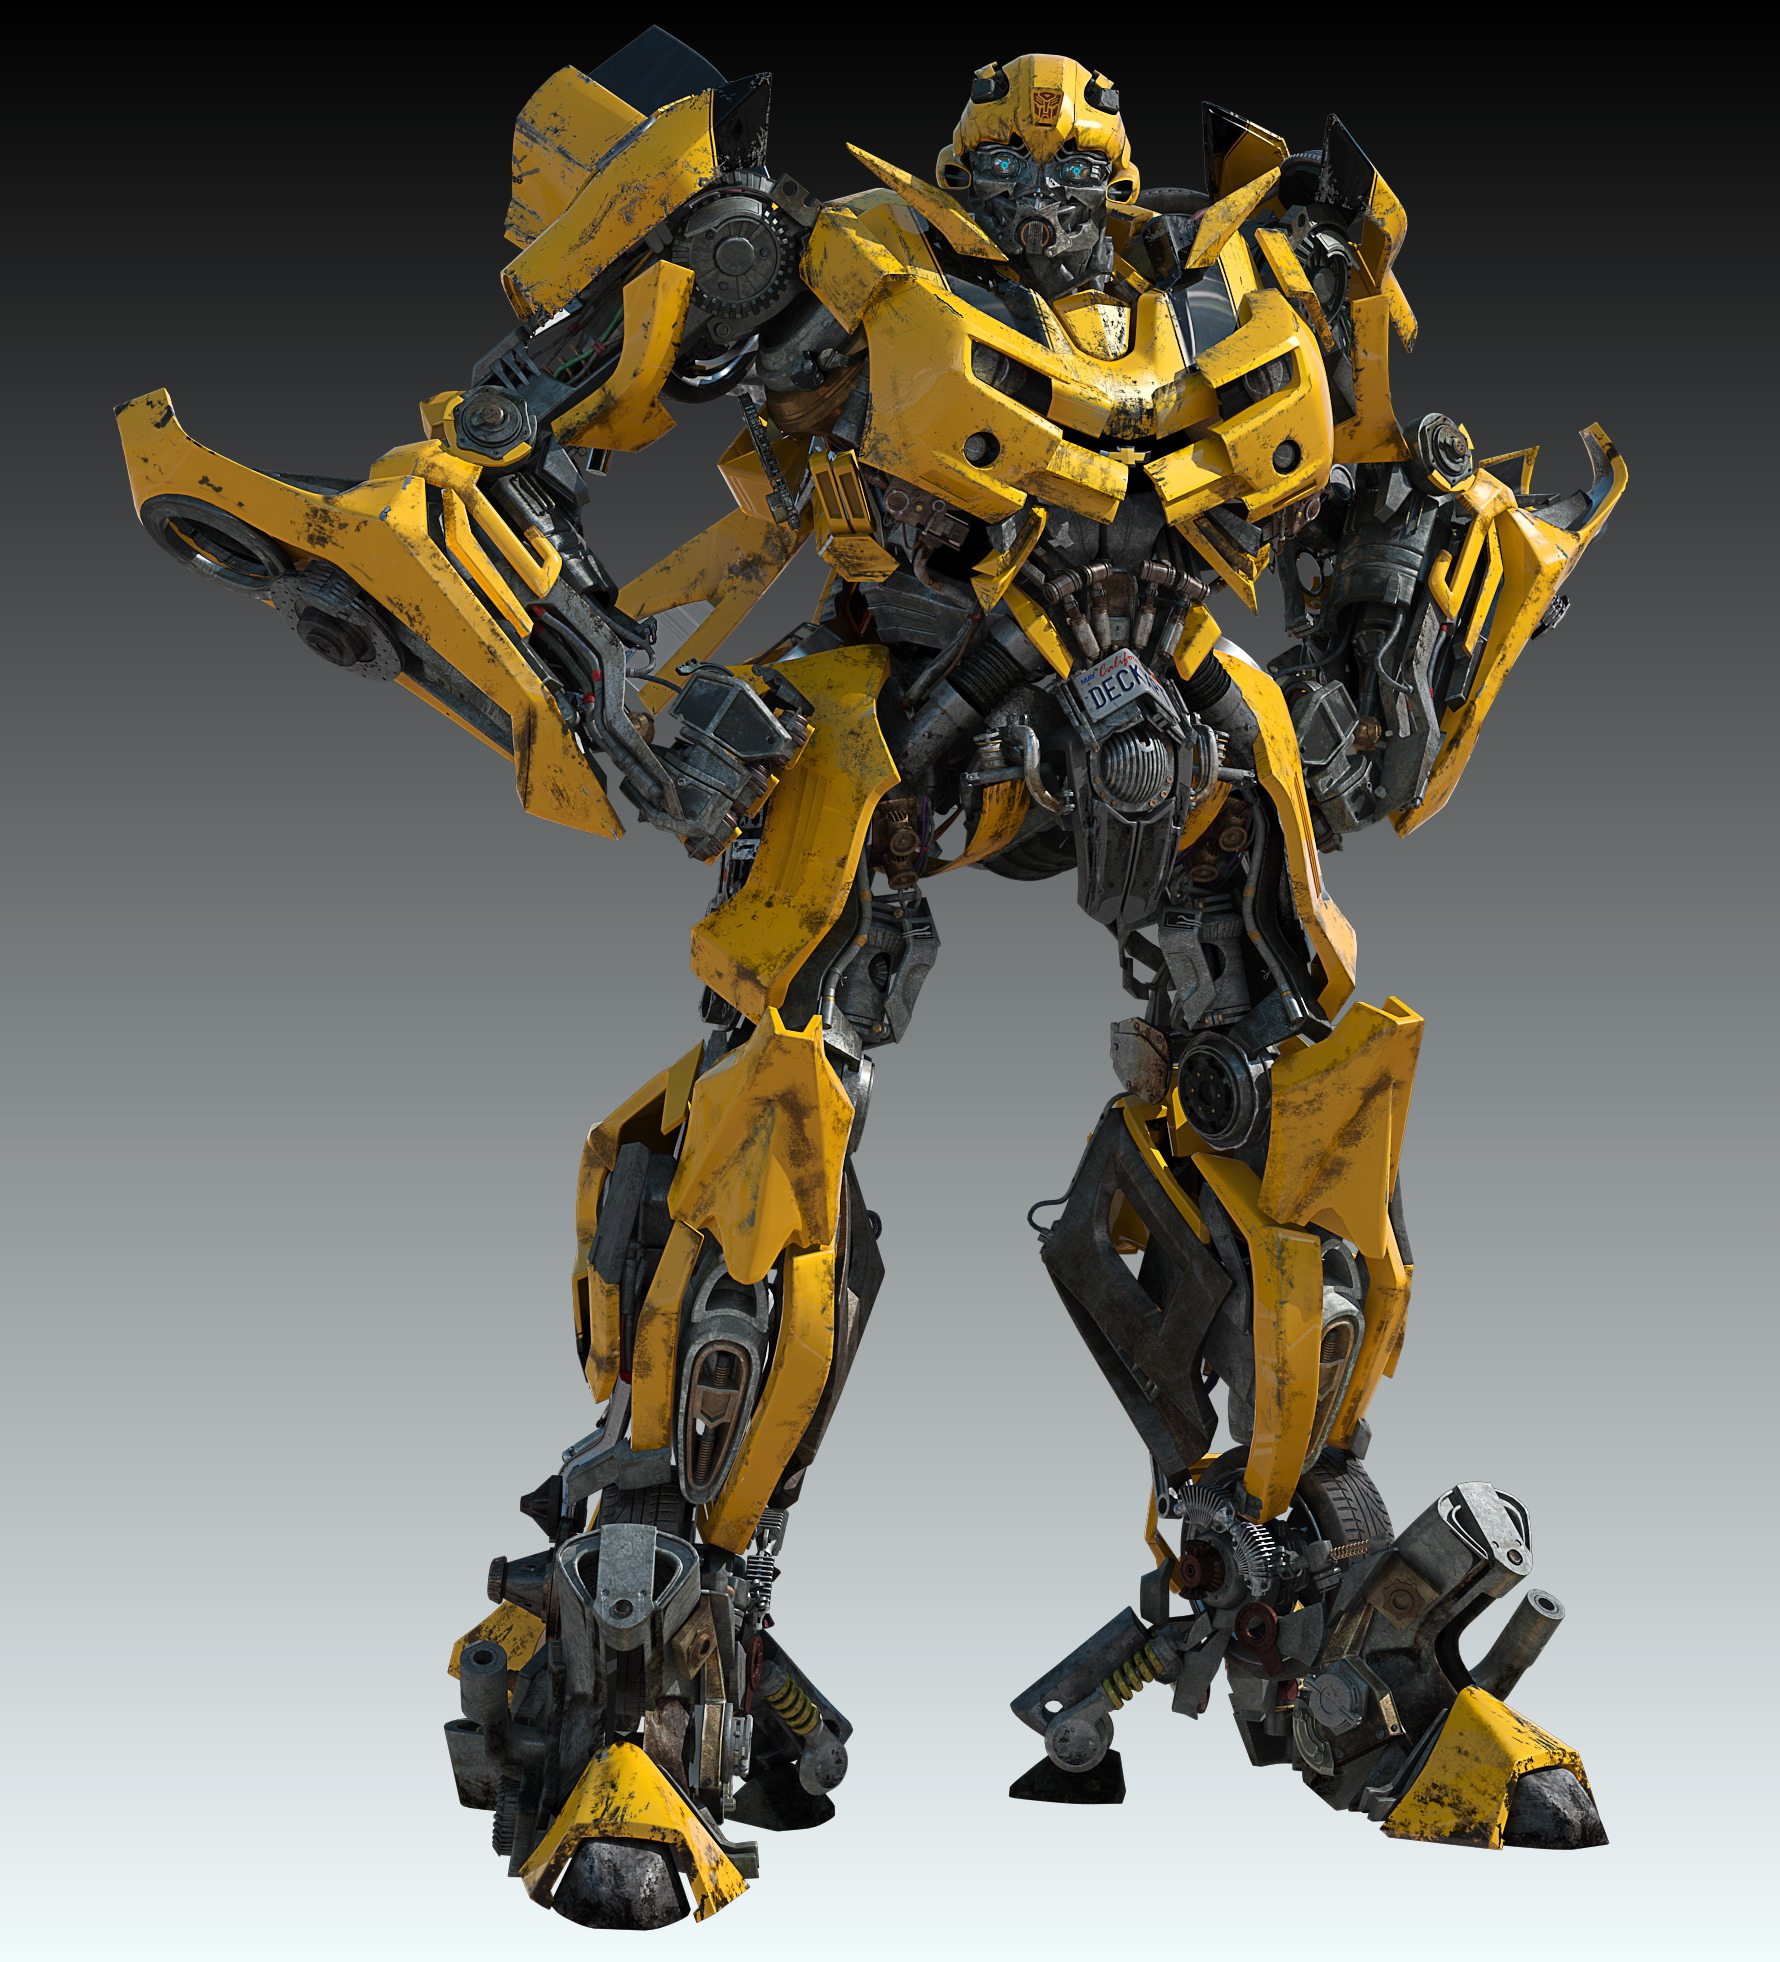 Bumblebee live or die tfw2005 the 2005 boards - Images of bumblebee from transformers ...